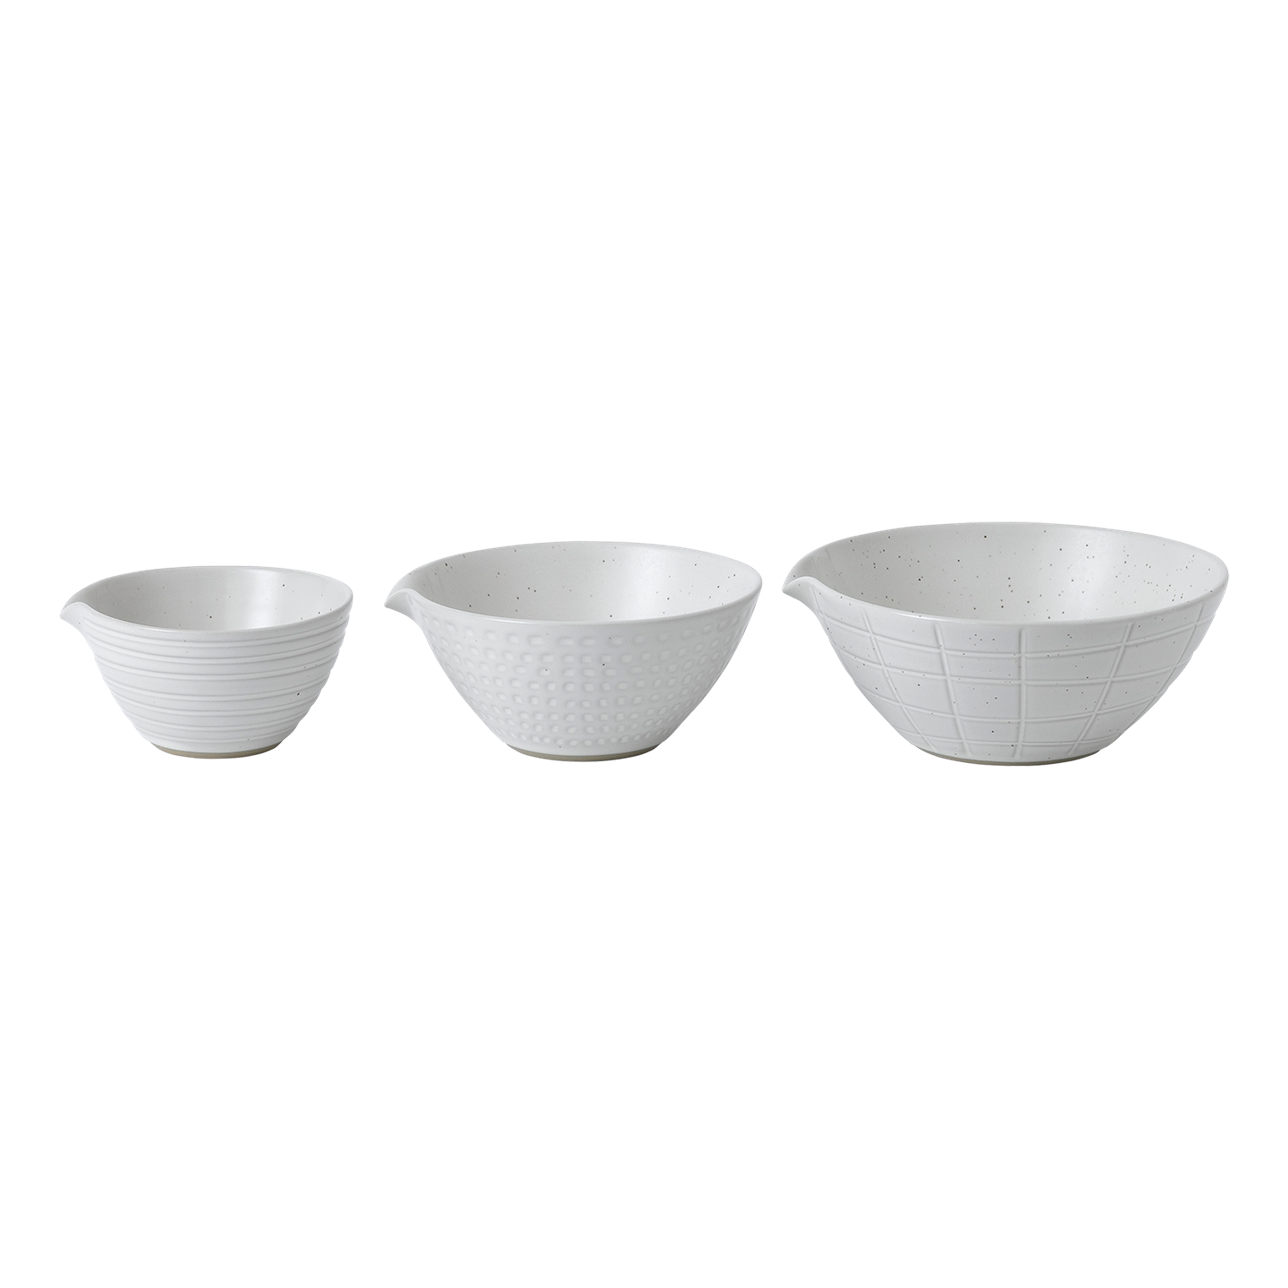 Maze Grill Mixed Pattern White Dipping Bowls (Set of 3)